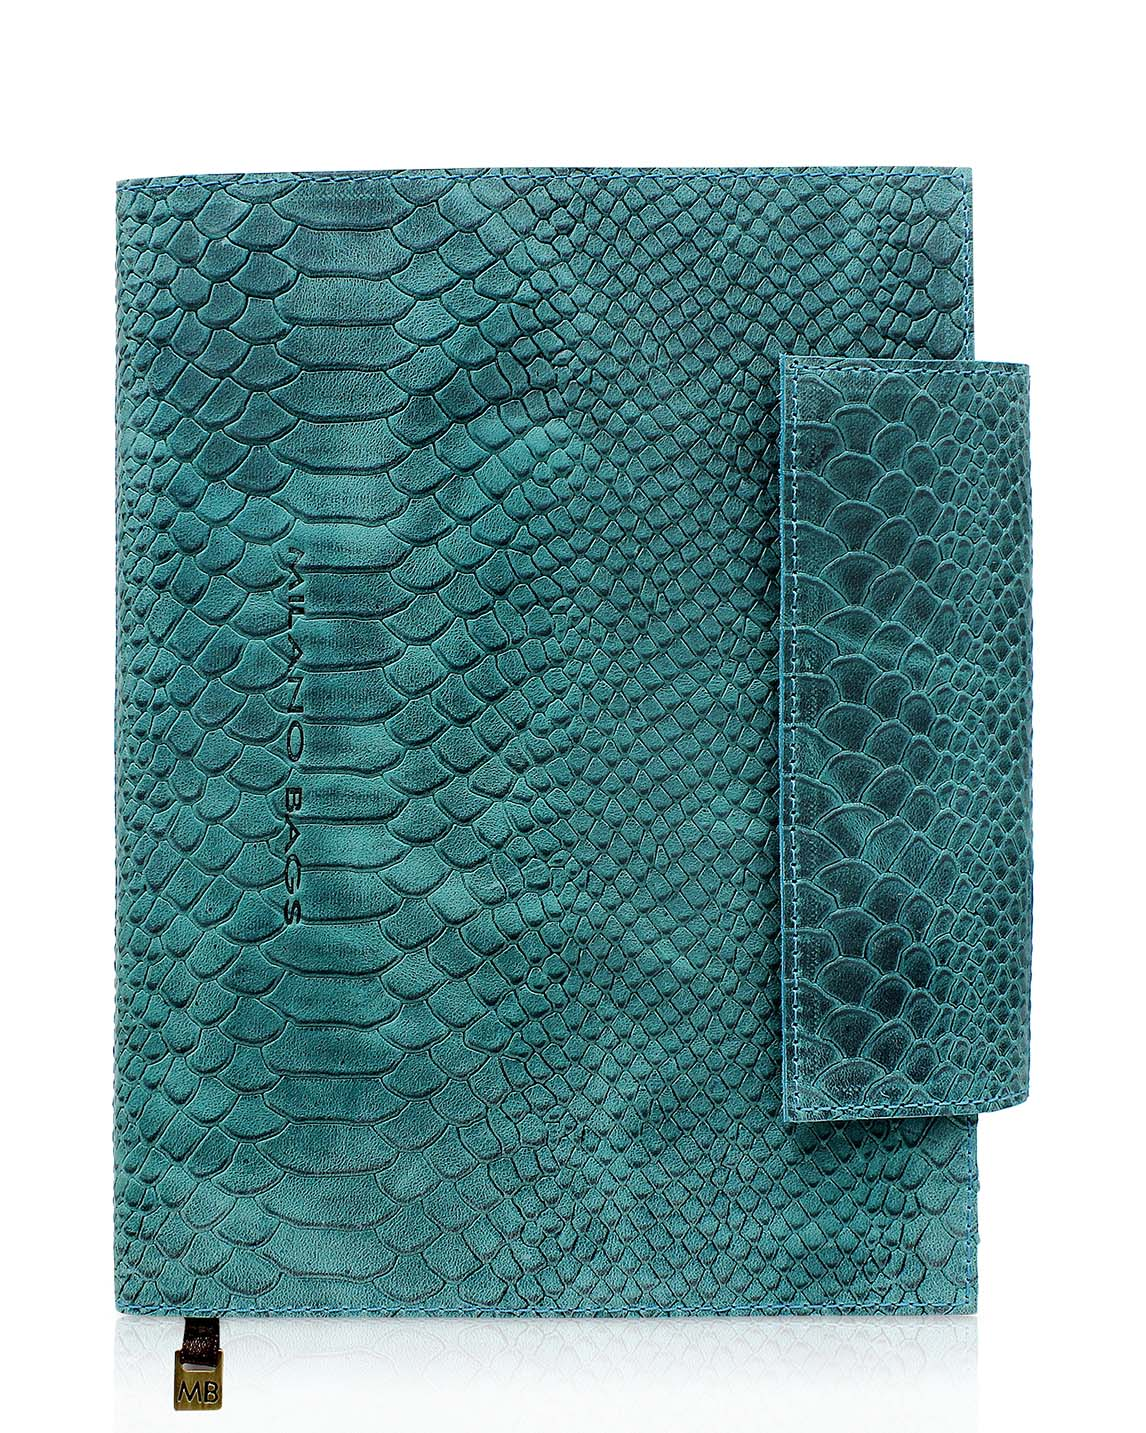 Agenda AG-0040 Color Verde